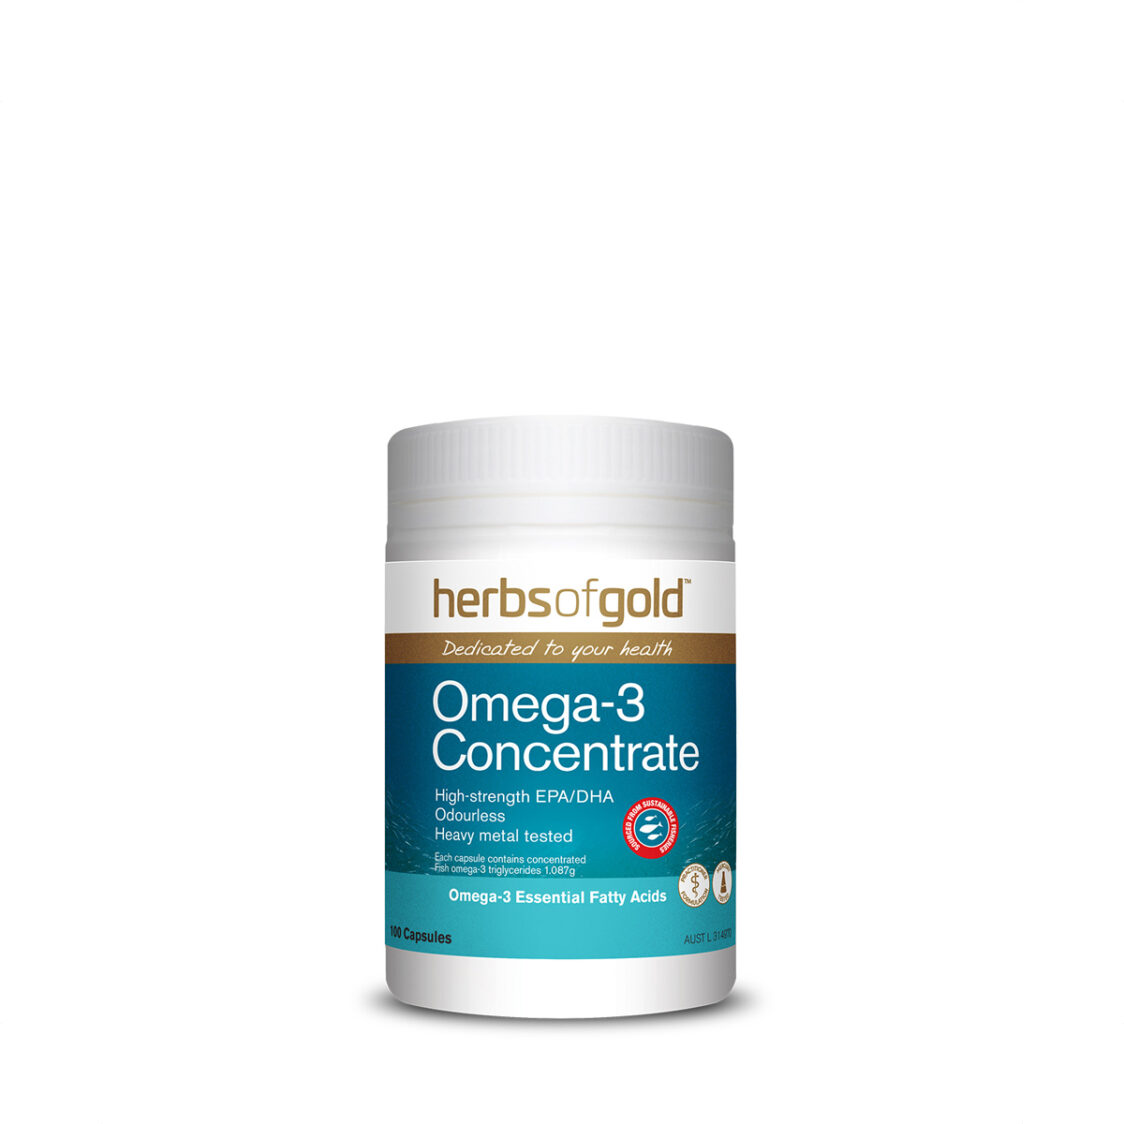 Omega-3 Concentrate